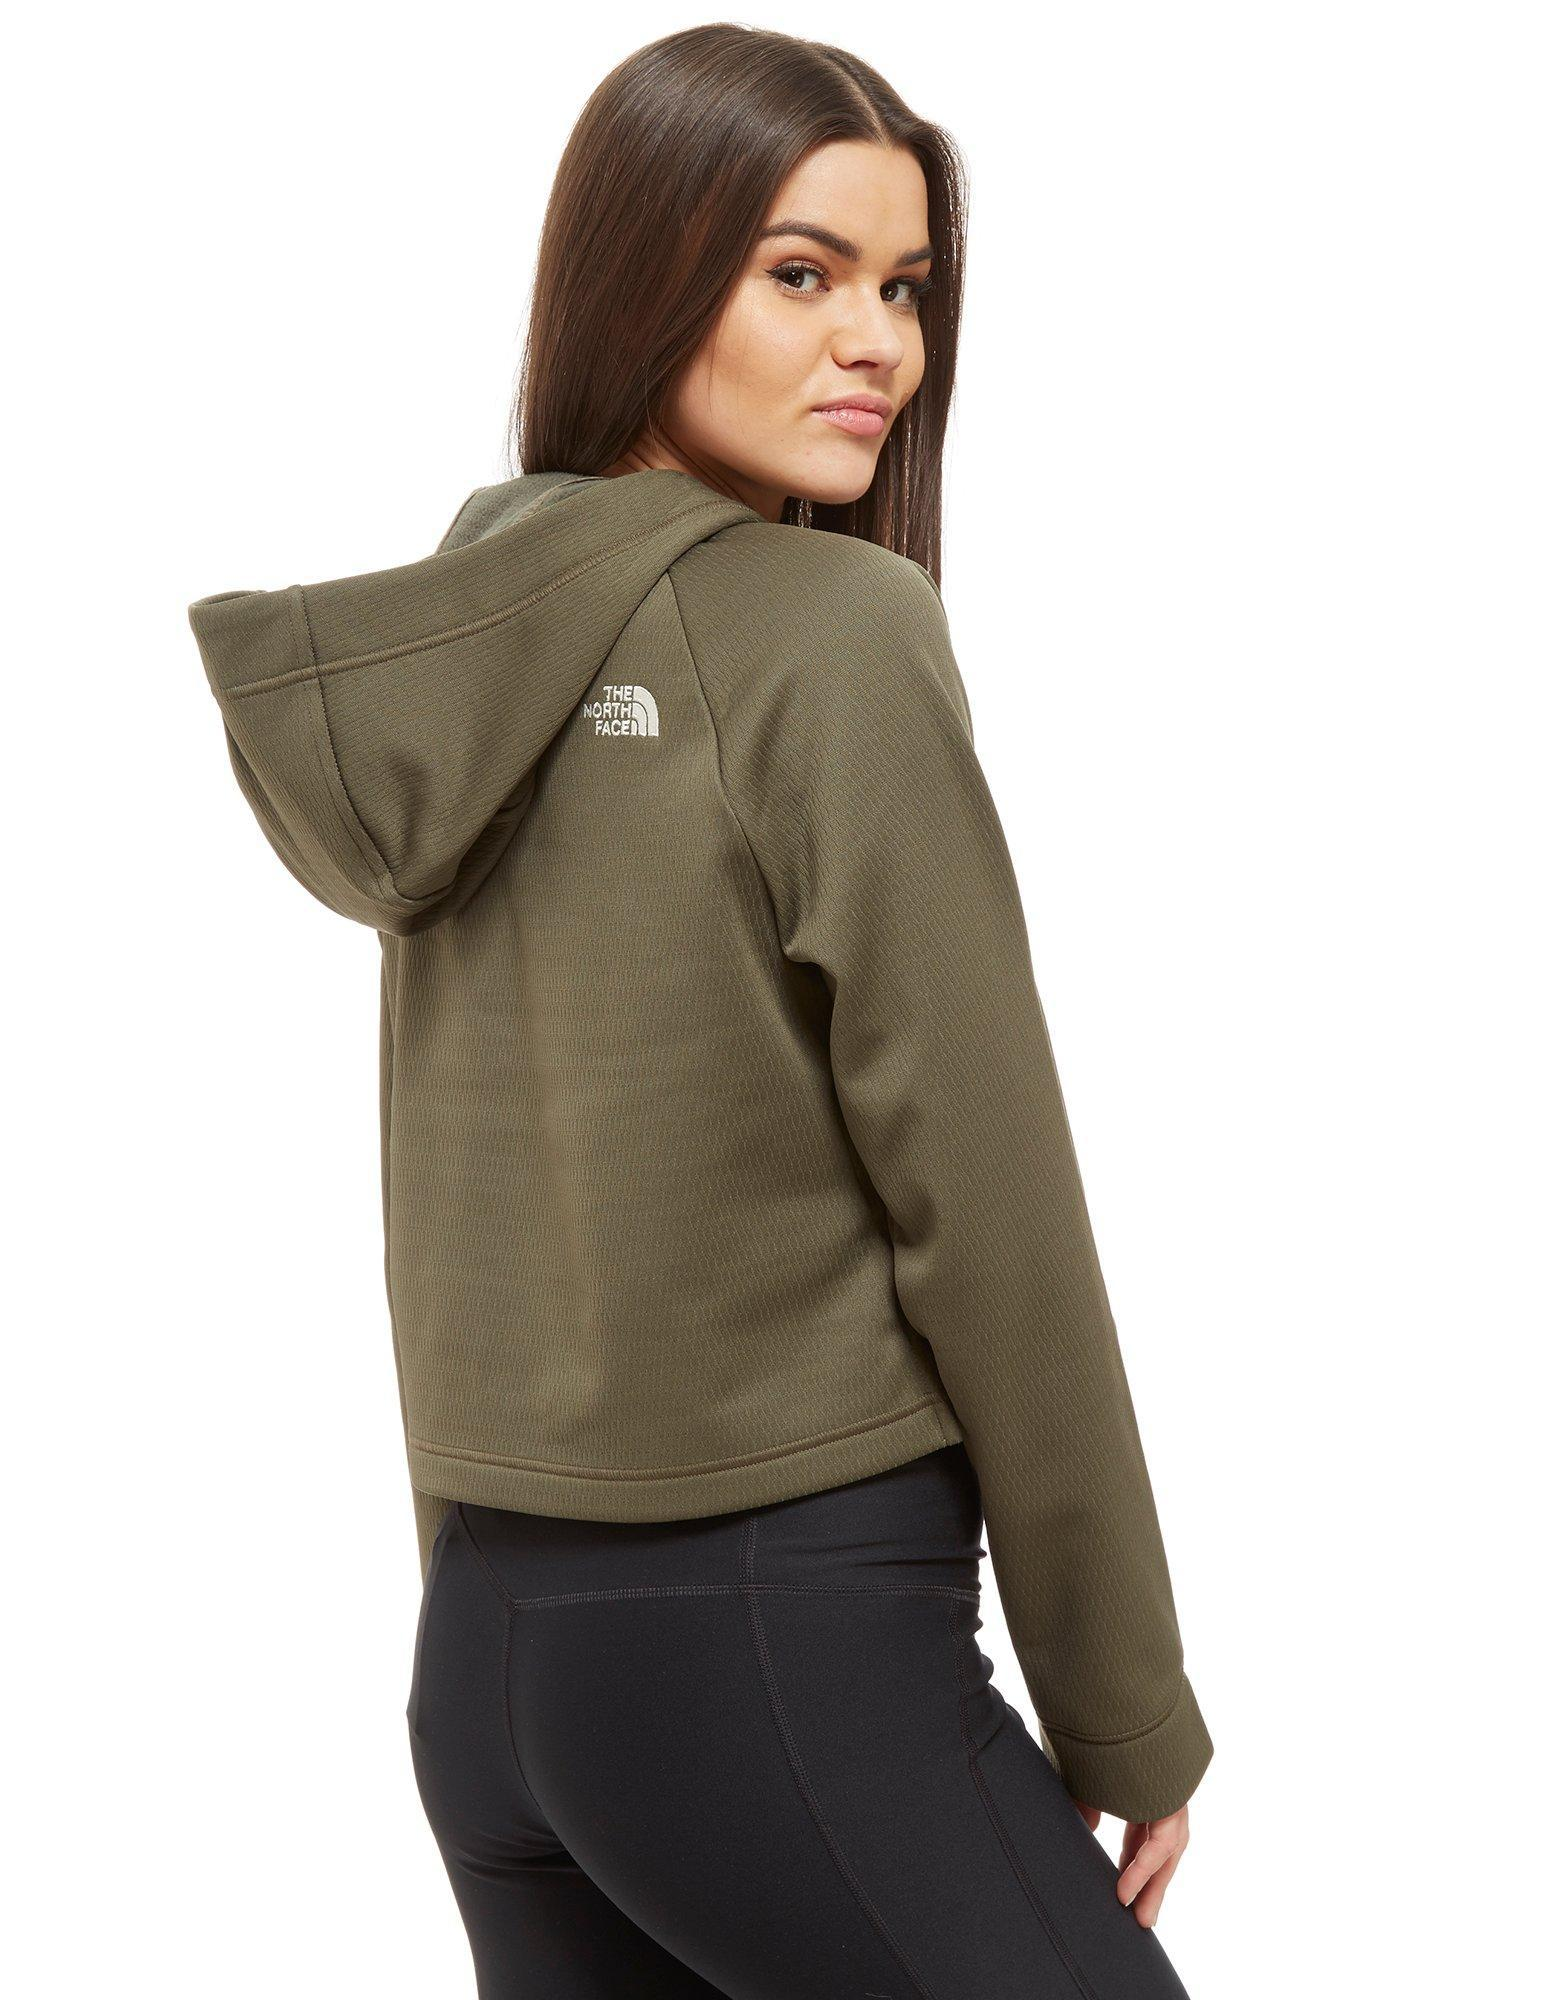 3f5a799c0 The North Face Green Tech Light Overhead Hoodie